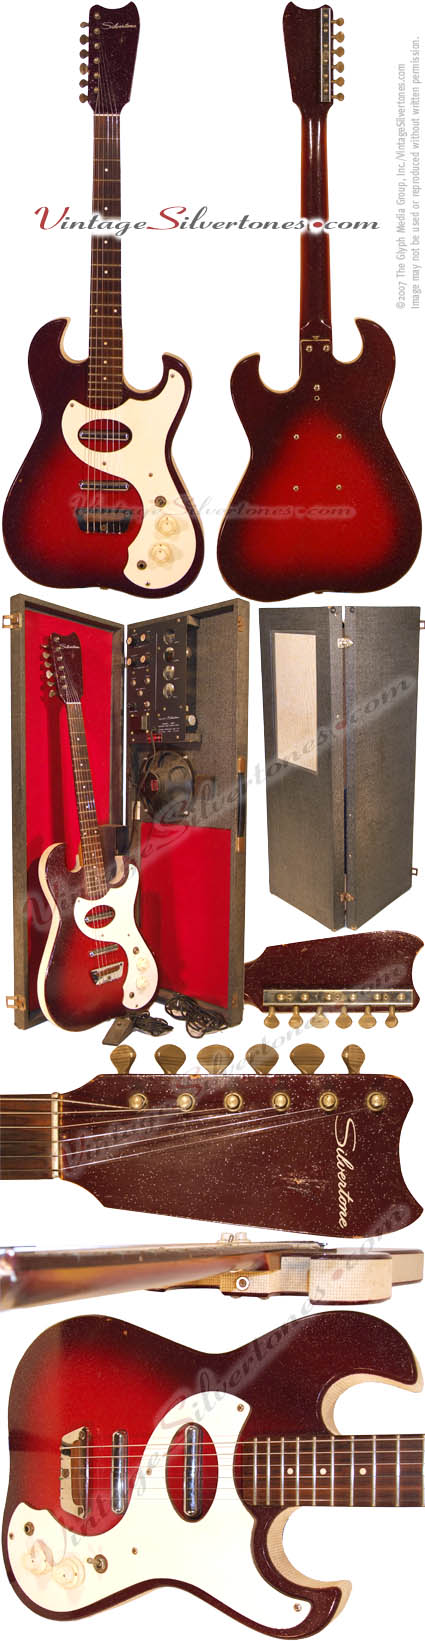 Silvertone 1457-Danelectro-made 2 pickup, electric guitar amp in case, 1964, red burst